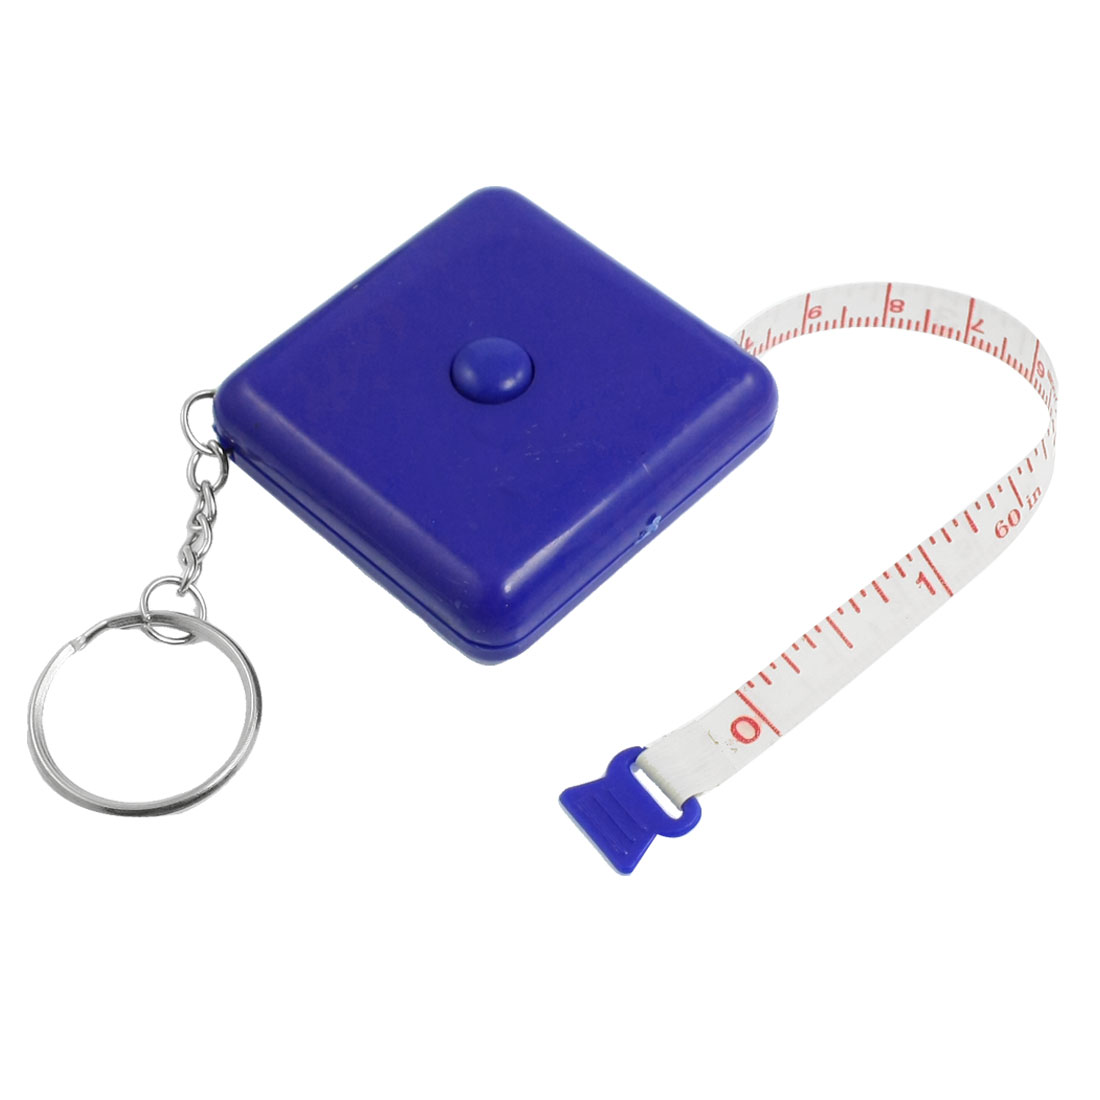 Tailor Sewing Blue Square Casing 1.5M Retractable Tape Measure Tool